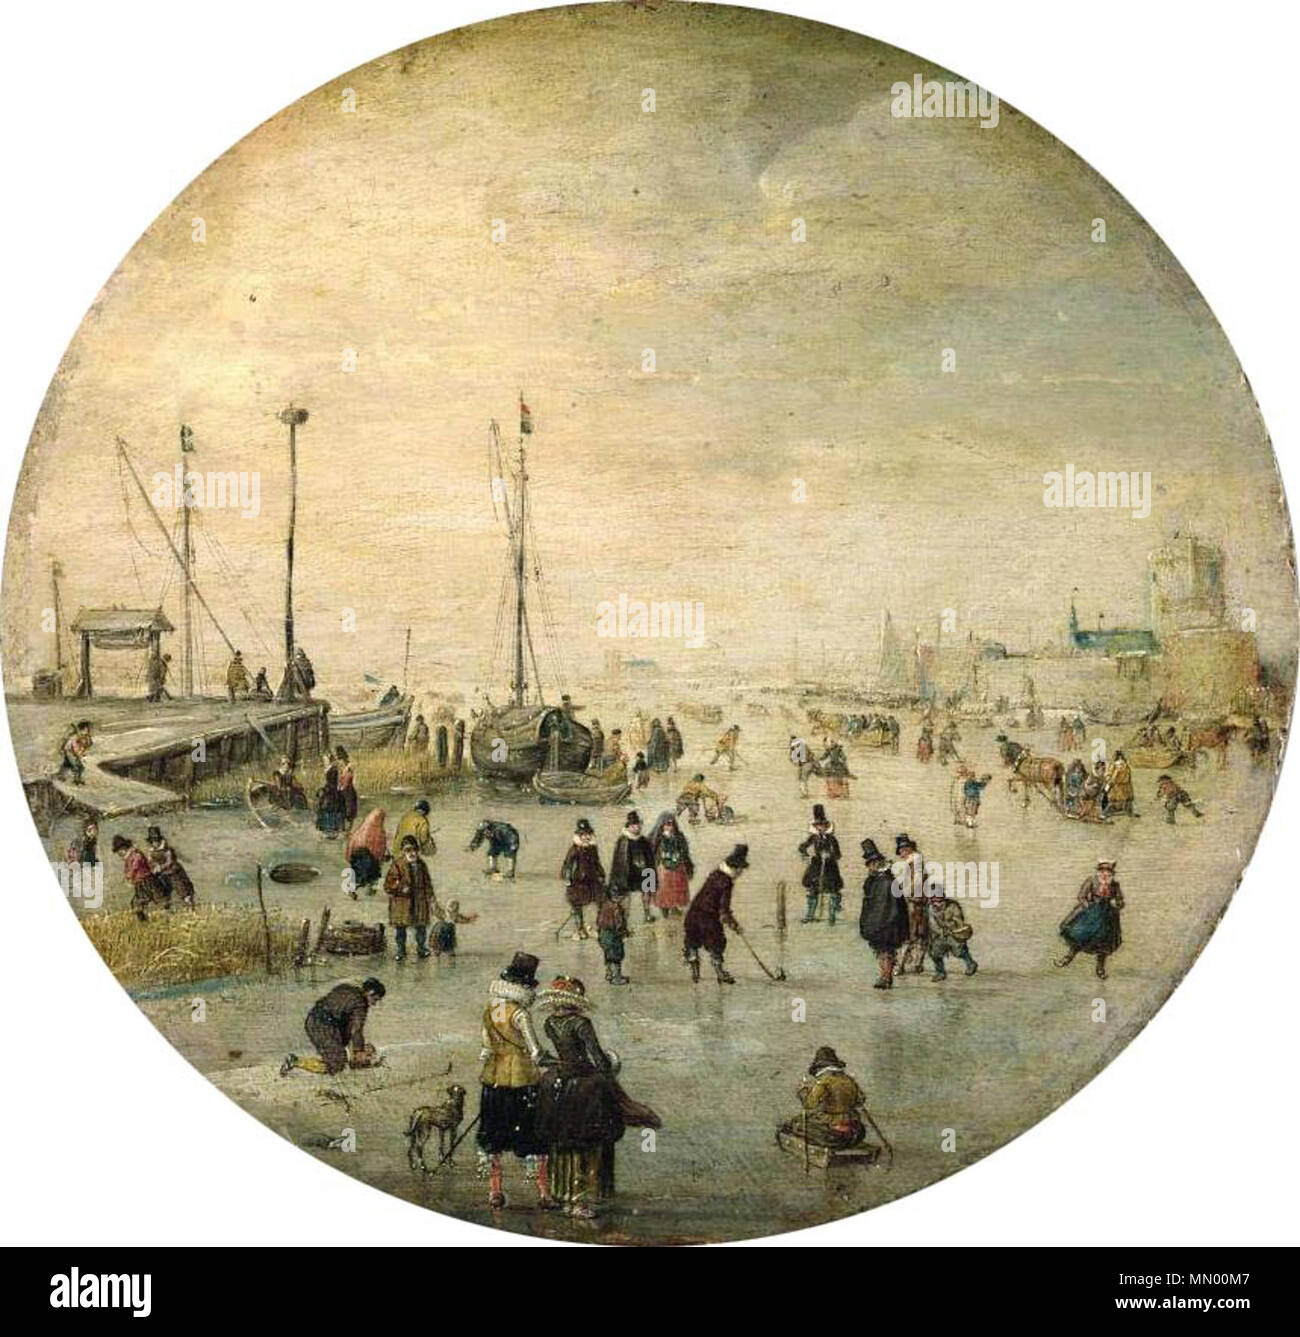 De Stomme Van Kampen English Winter Landscape Circa 1620 Hendrick Avercamp 1585